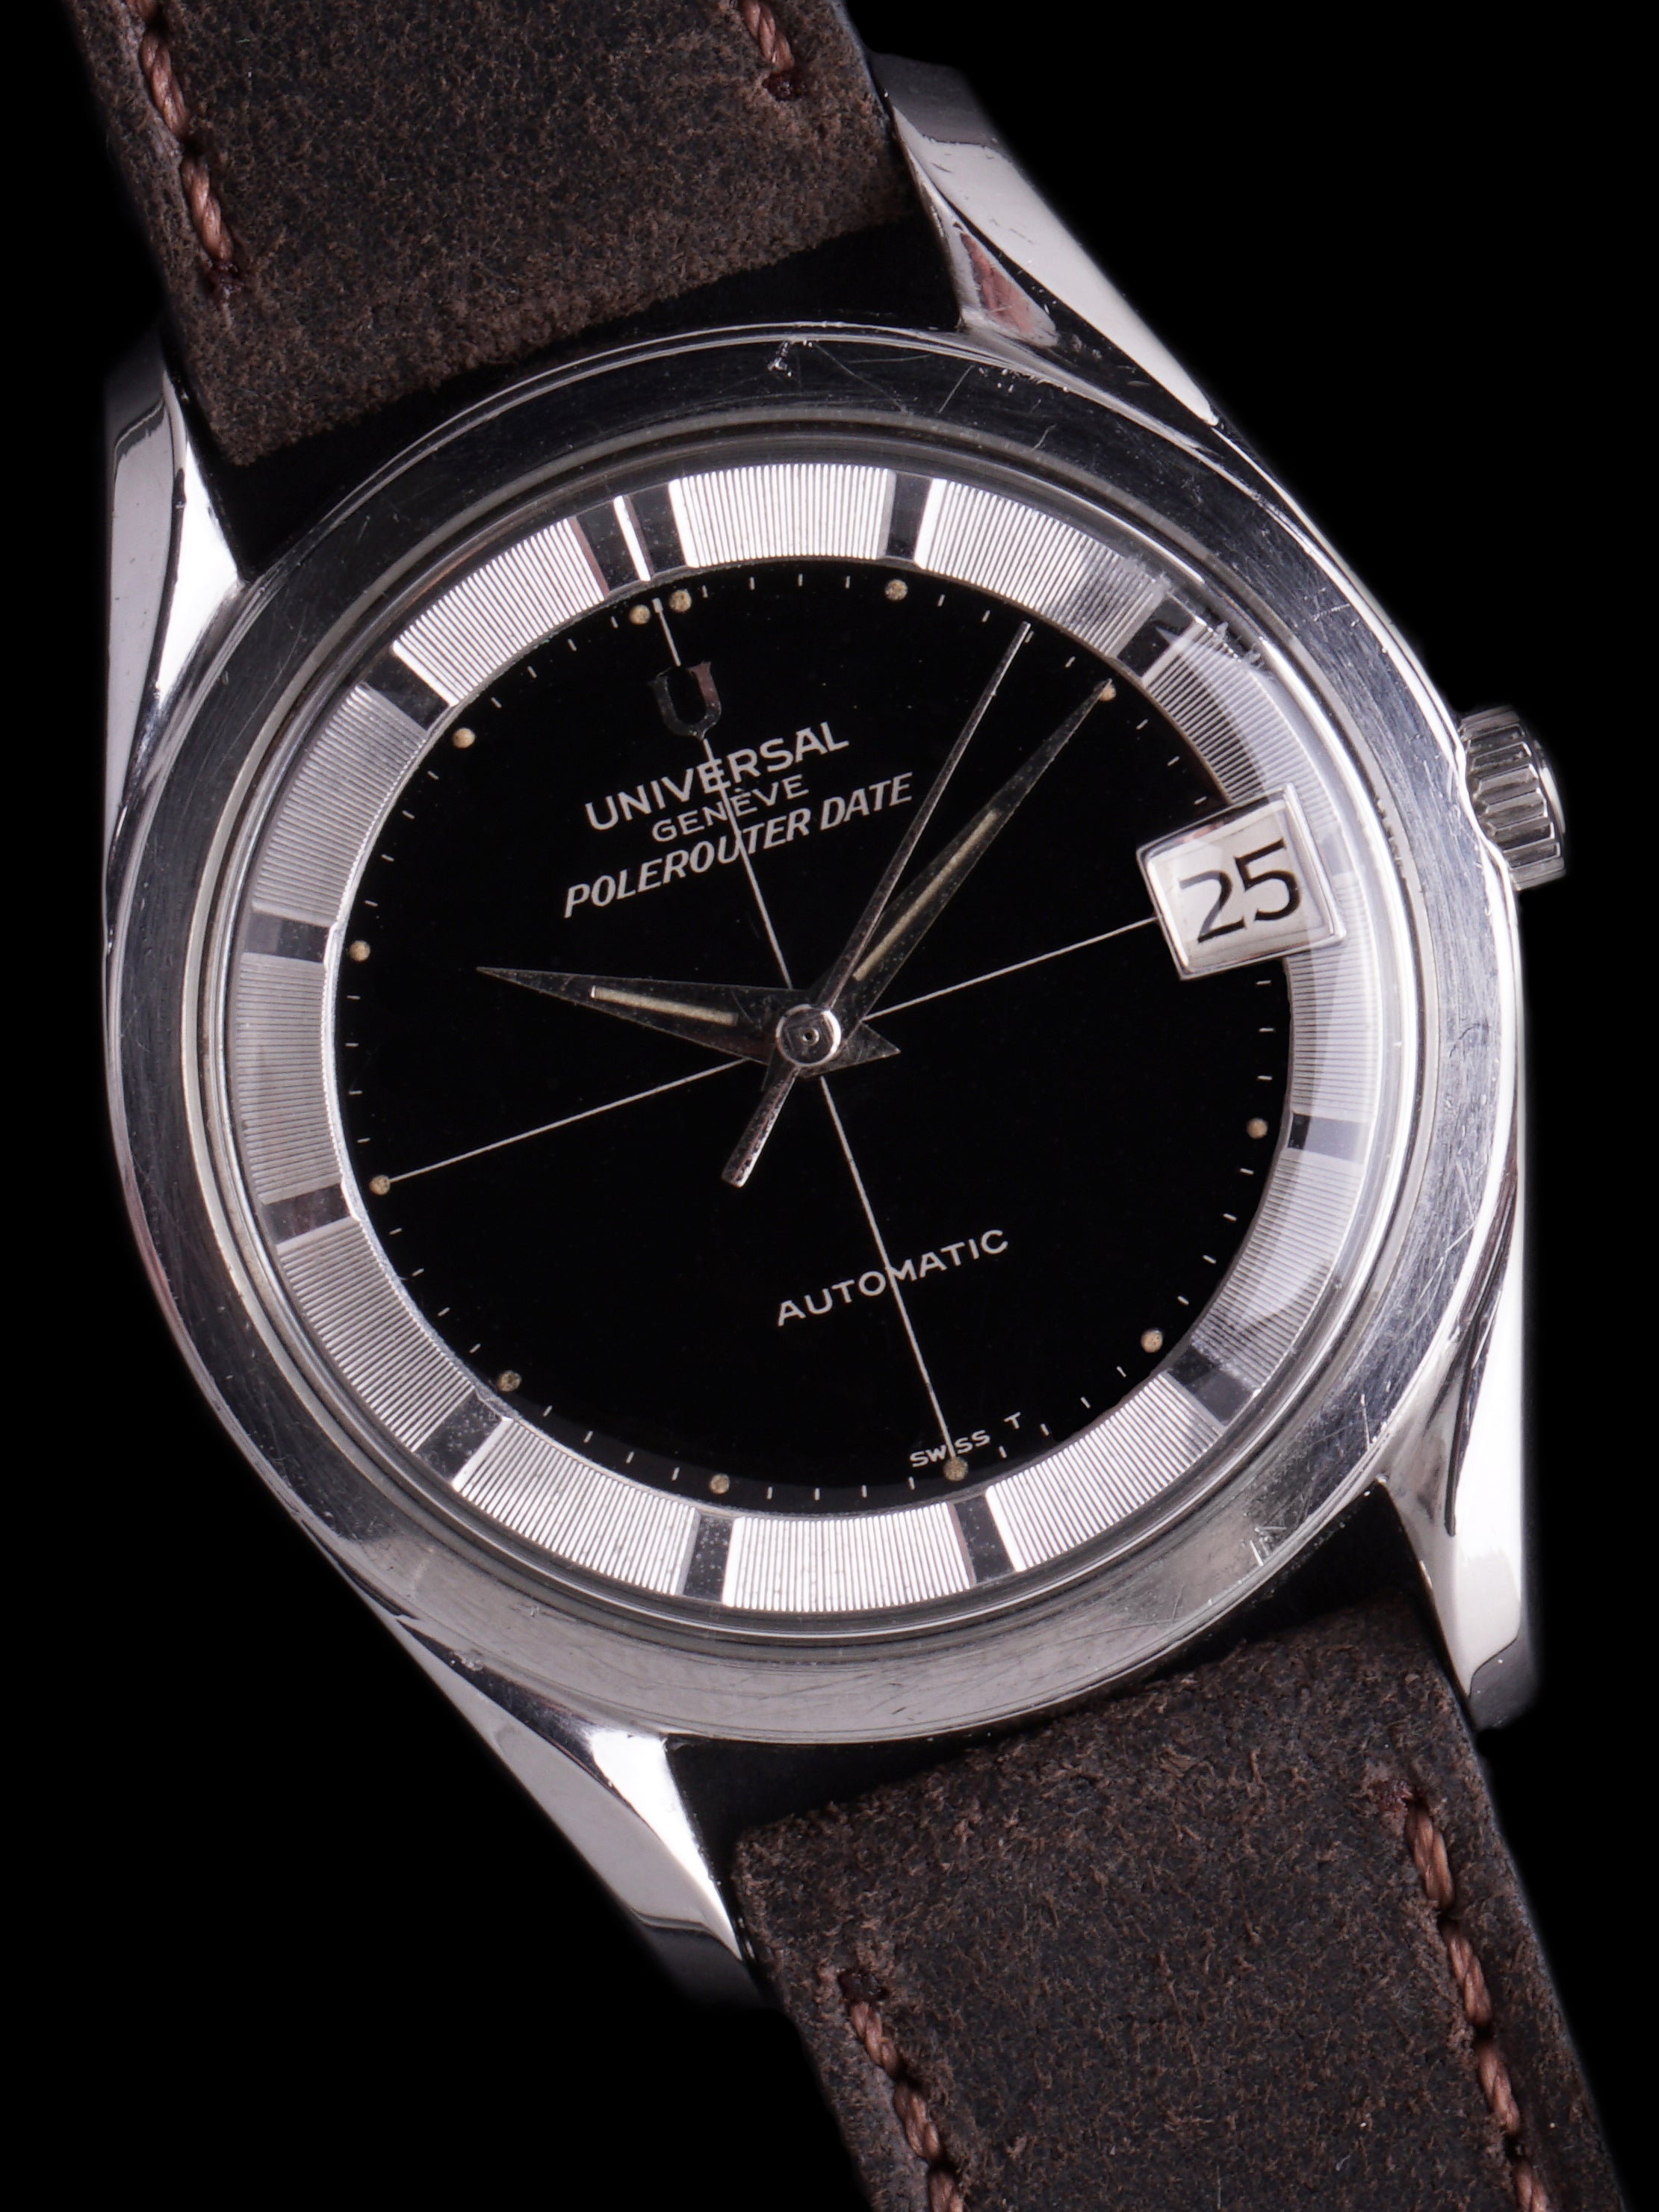 1965 Universal Geneve Polerouter Date (Ref.204607/1) Black Gilt Dial